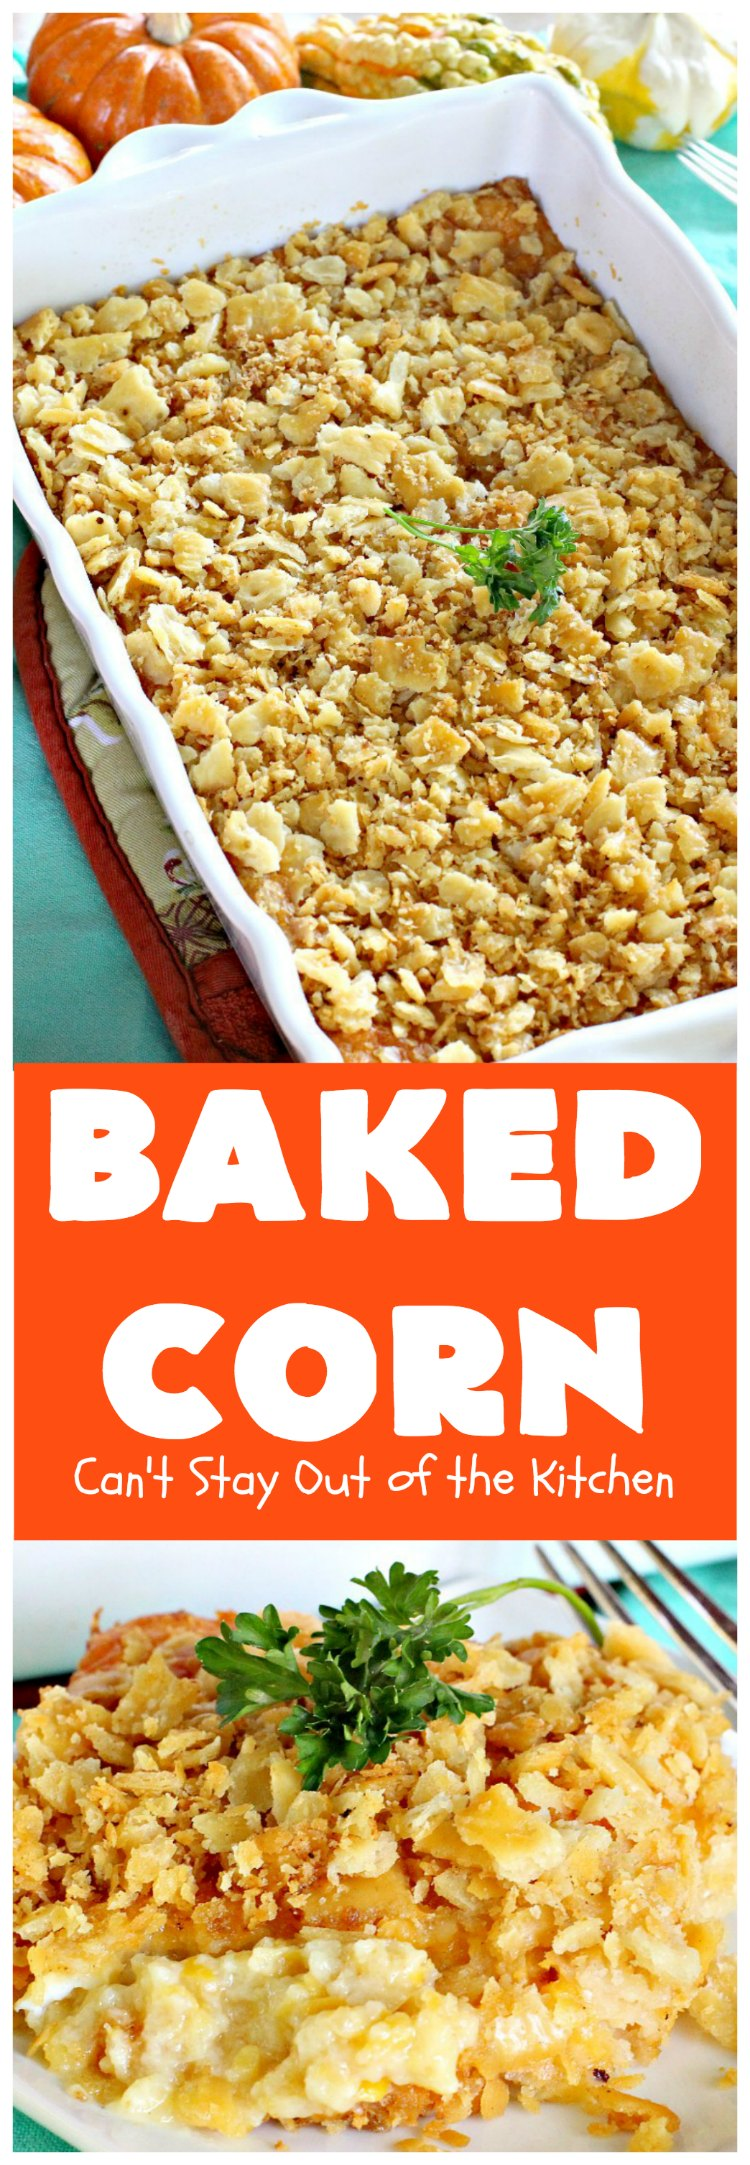 Baked Corn | Can't Stay Out of the Kitchen